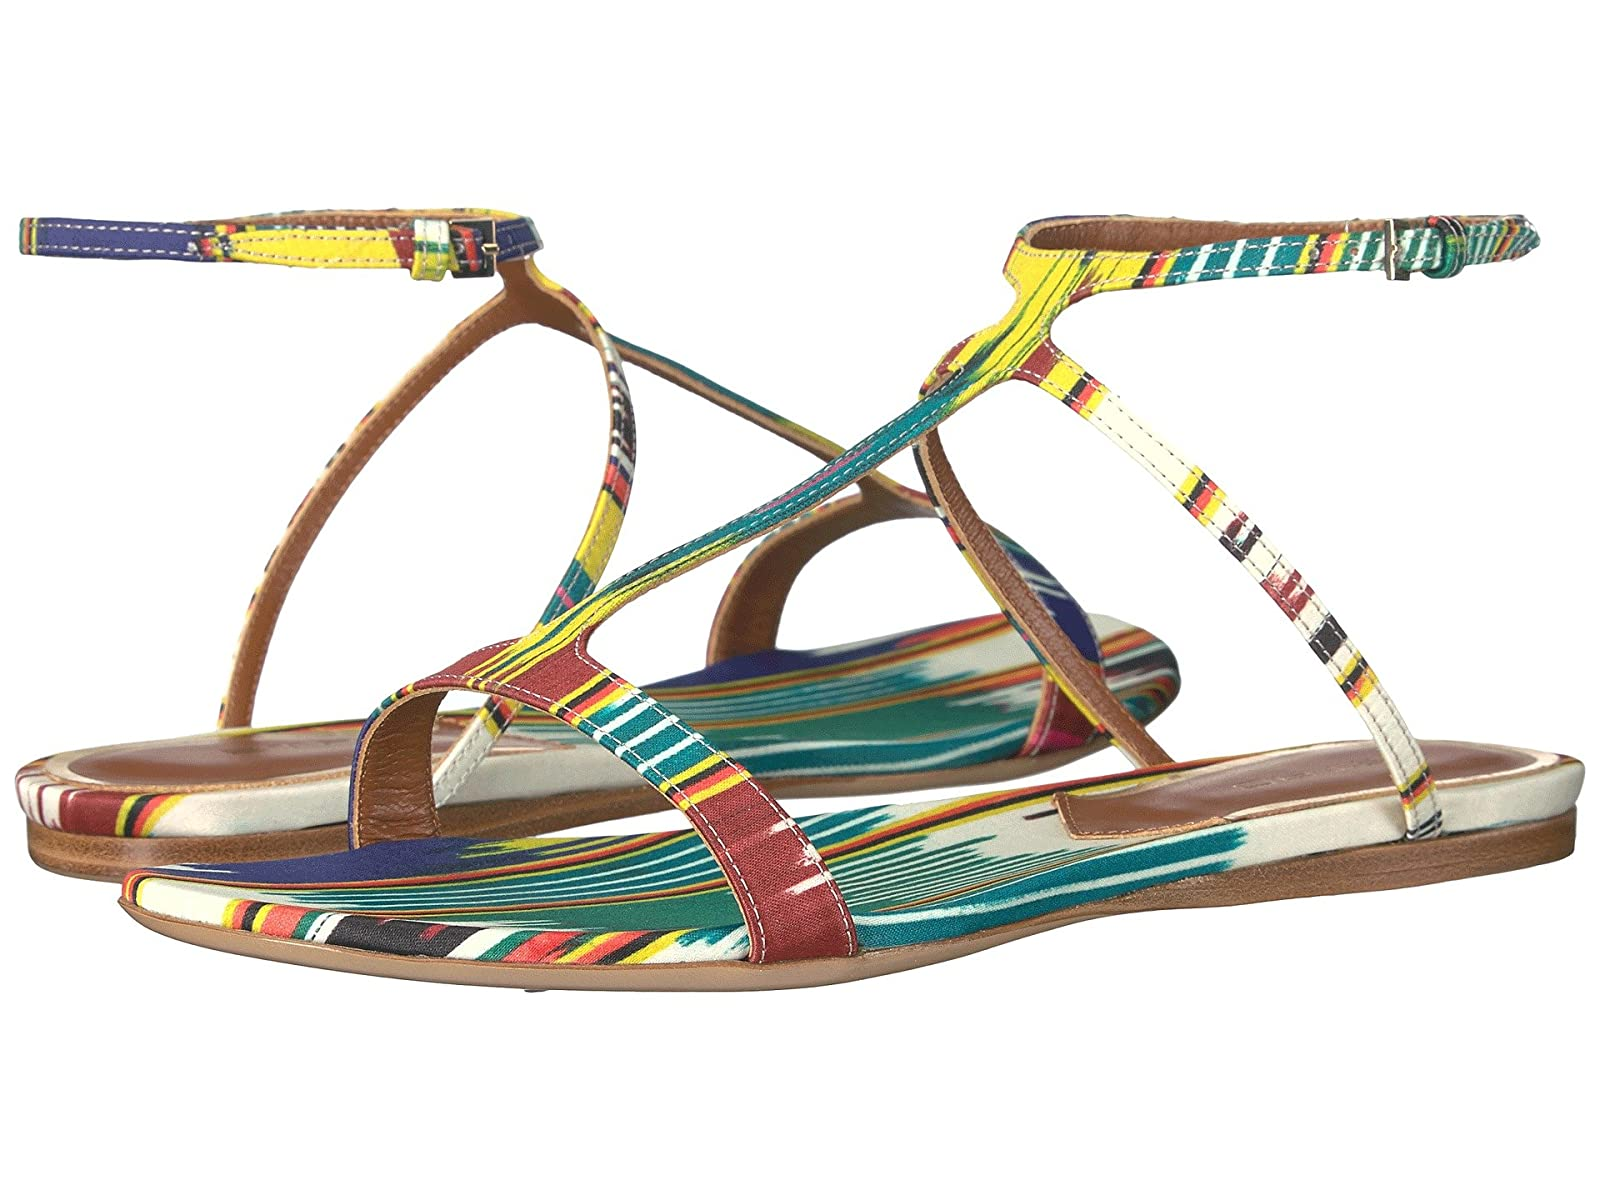 Etro Ikat Flat SandalCheap and distinctive eye-catching shoes